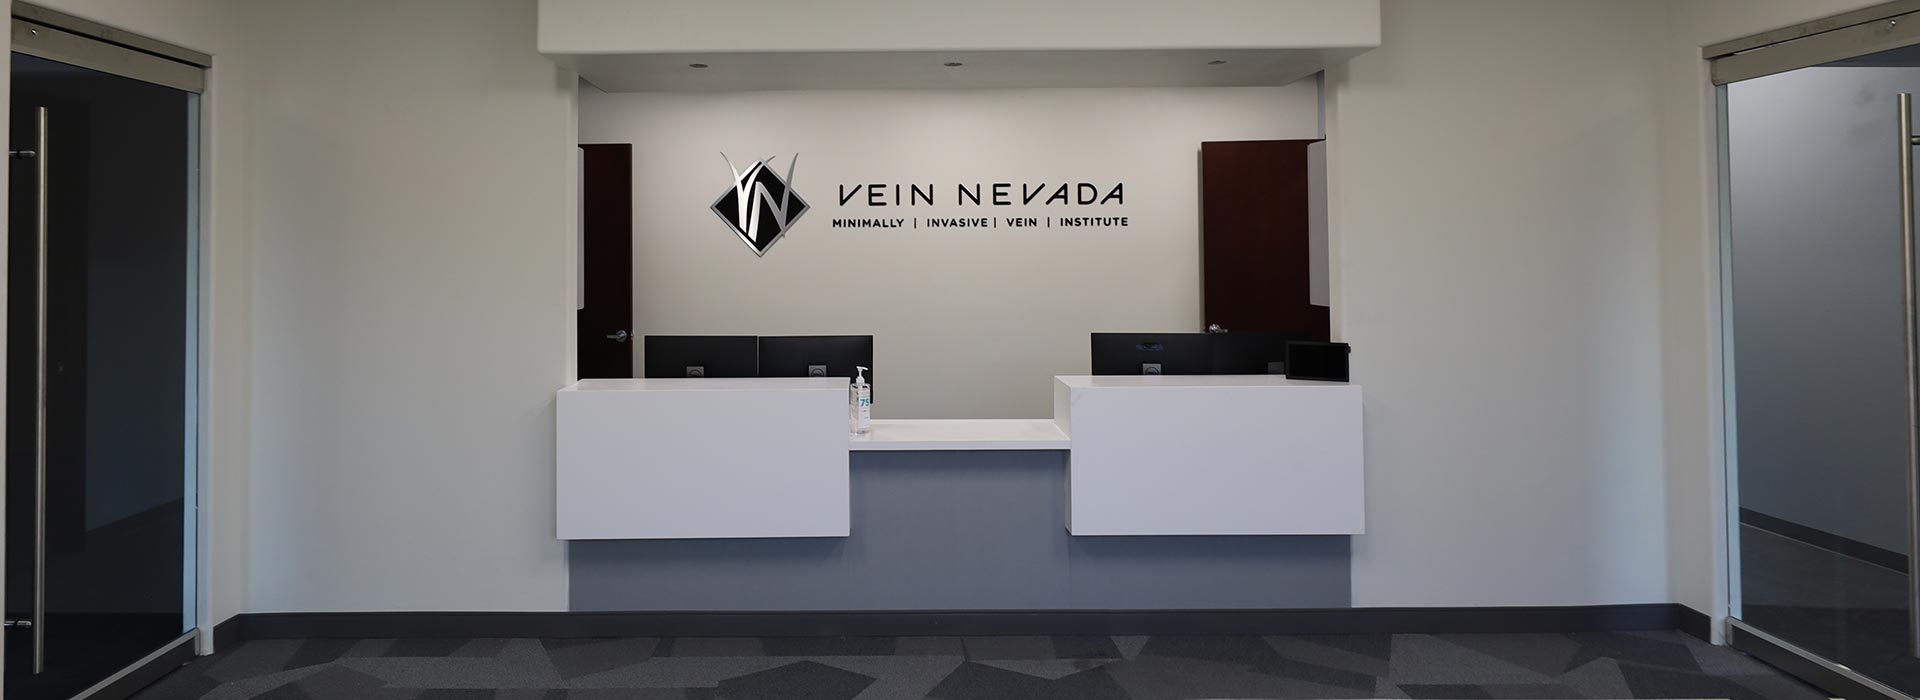 Vein Nevada Minimally Invasive Vein Institute Henderson, Las Vegas Nevada office open